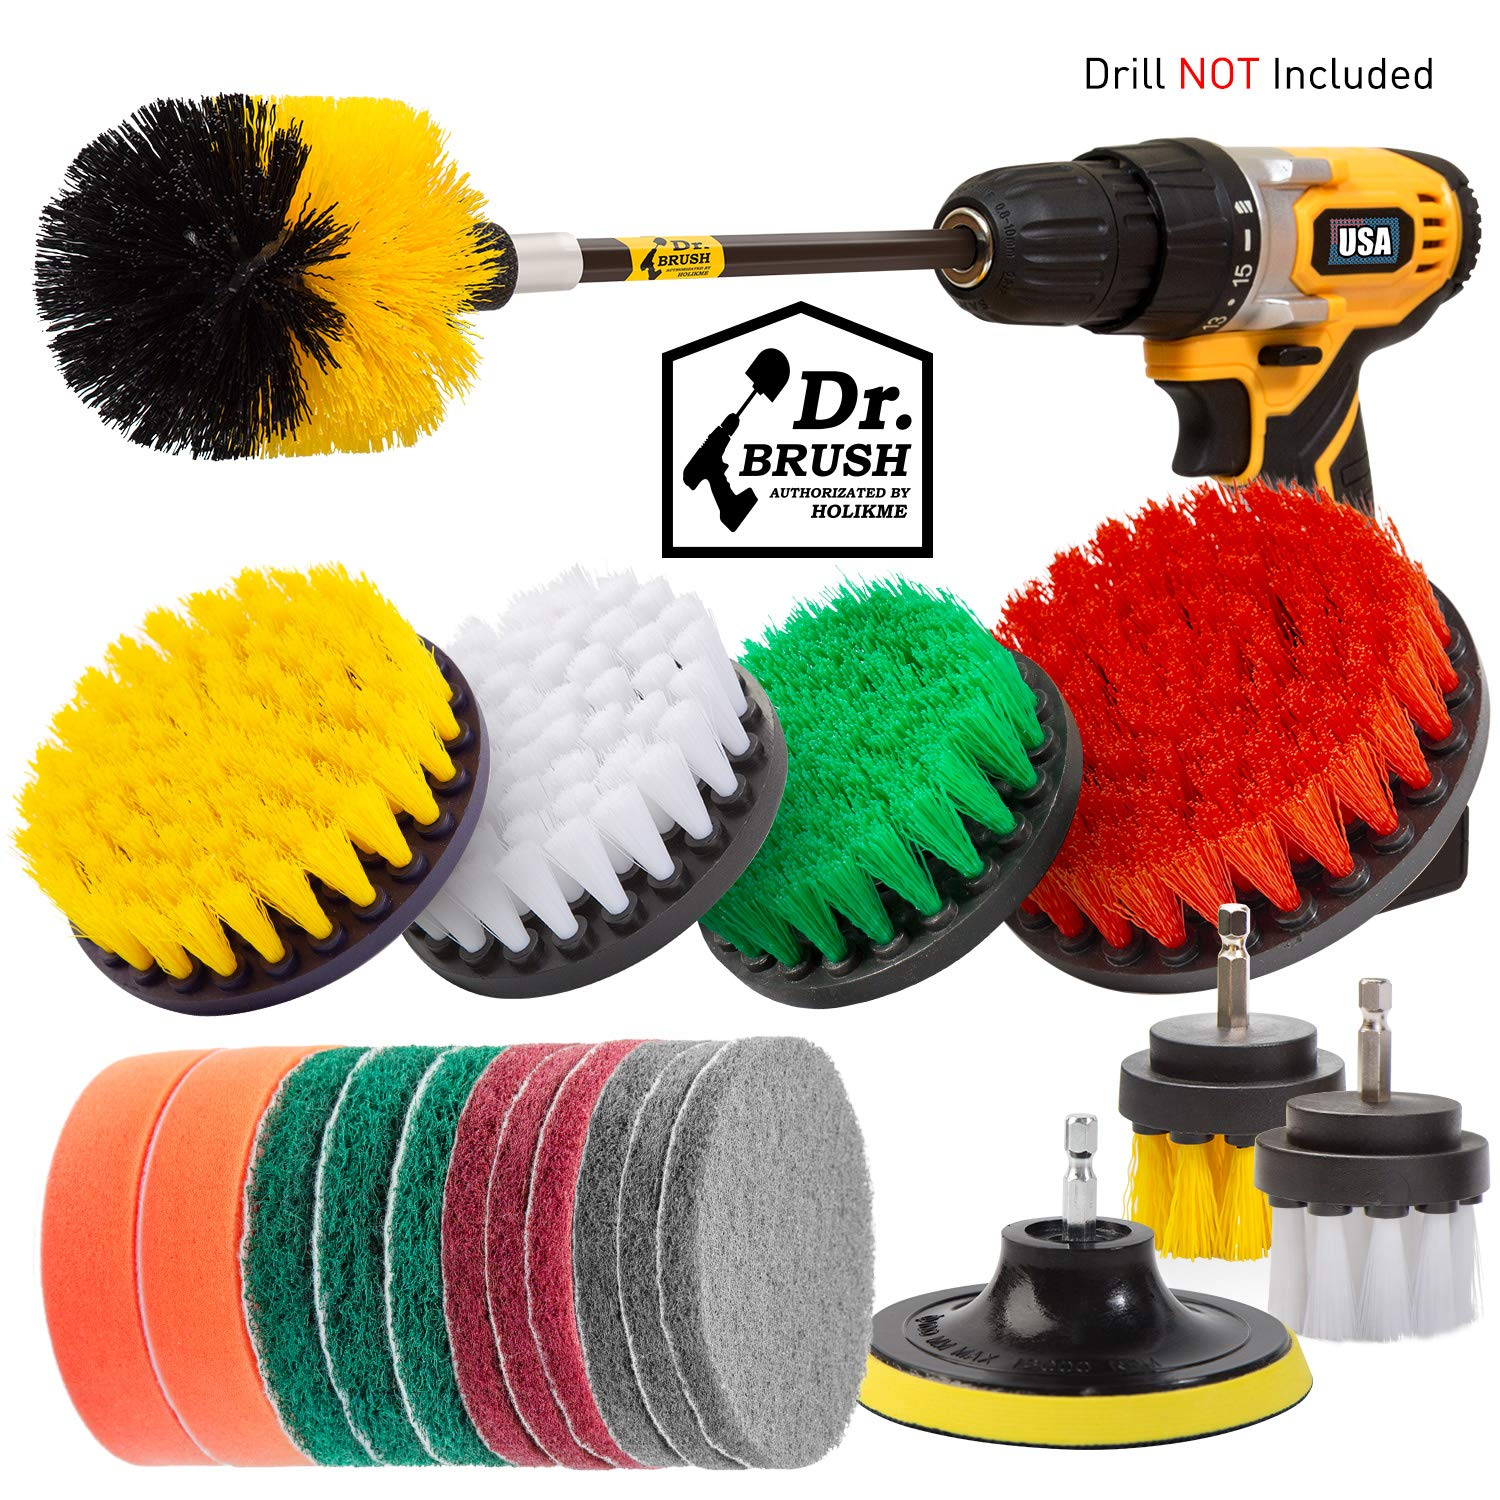 Holikme 20Piece Drill Brush Attachments Set,Scrub Pads & Sponge, Power Scrubber Brush with Extend Long Attachment All purpose Clean for Grout, Tiles, Sinks, Bathtub, Bathroom, Kitchen by Holikme